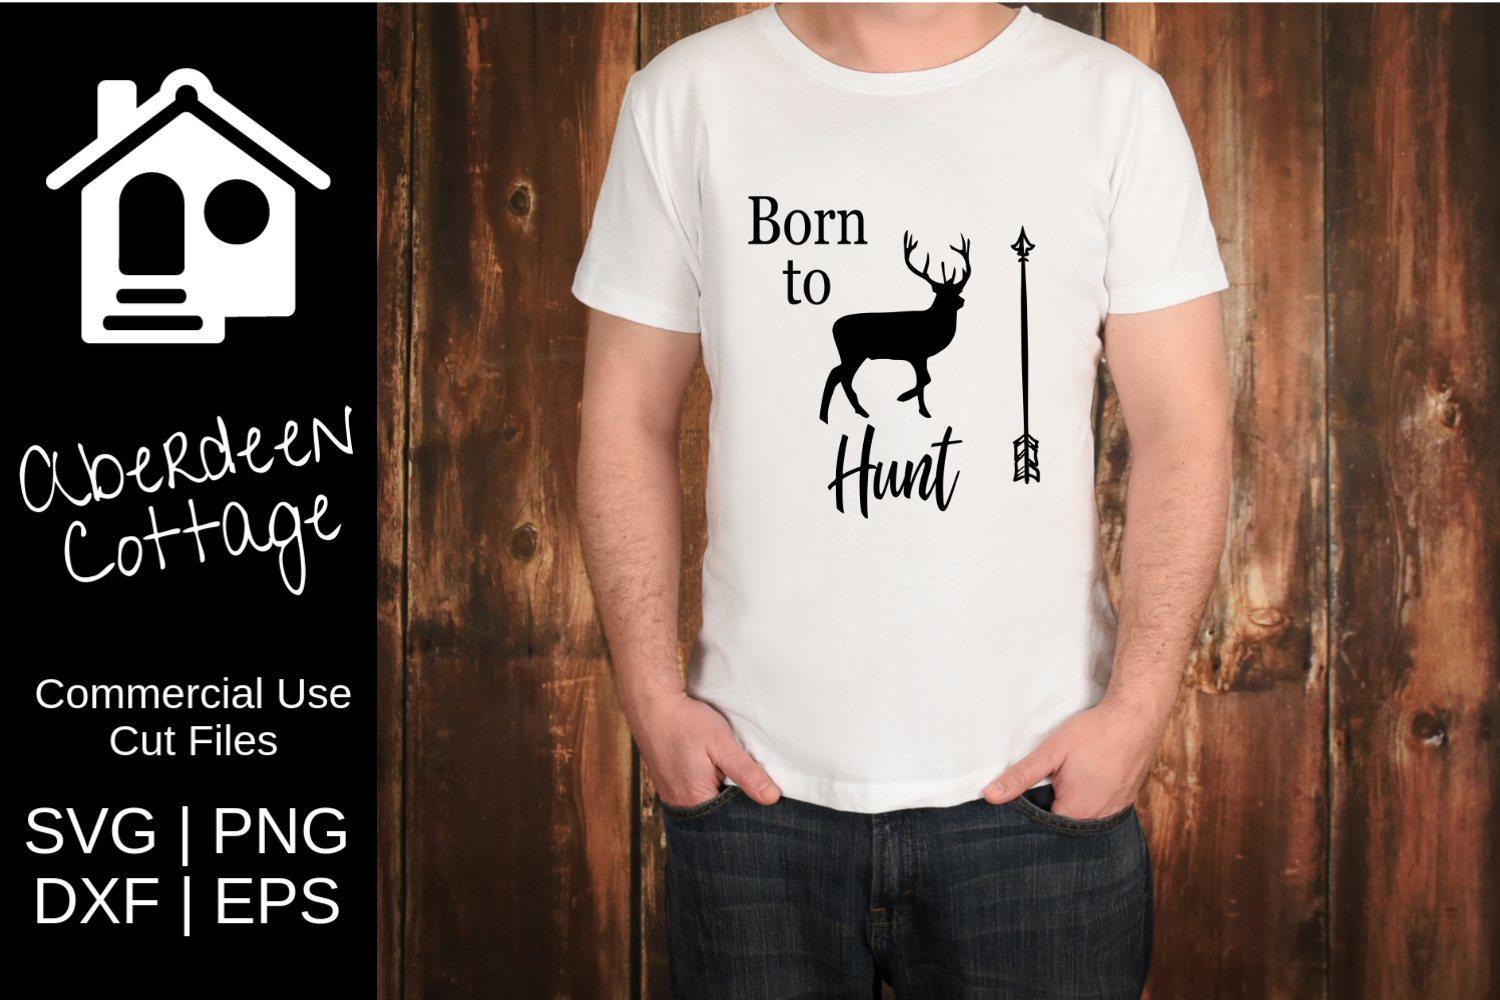 Download Free Born To Hunt Design Graphic By Aberdeencottage Creative Fabrica for Cricut Explore, Silhouette and other cutting machines.